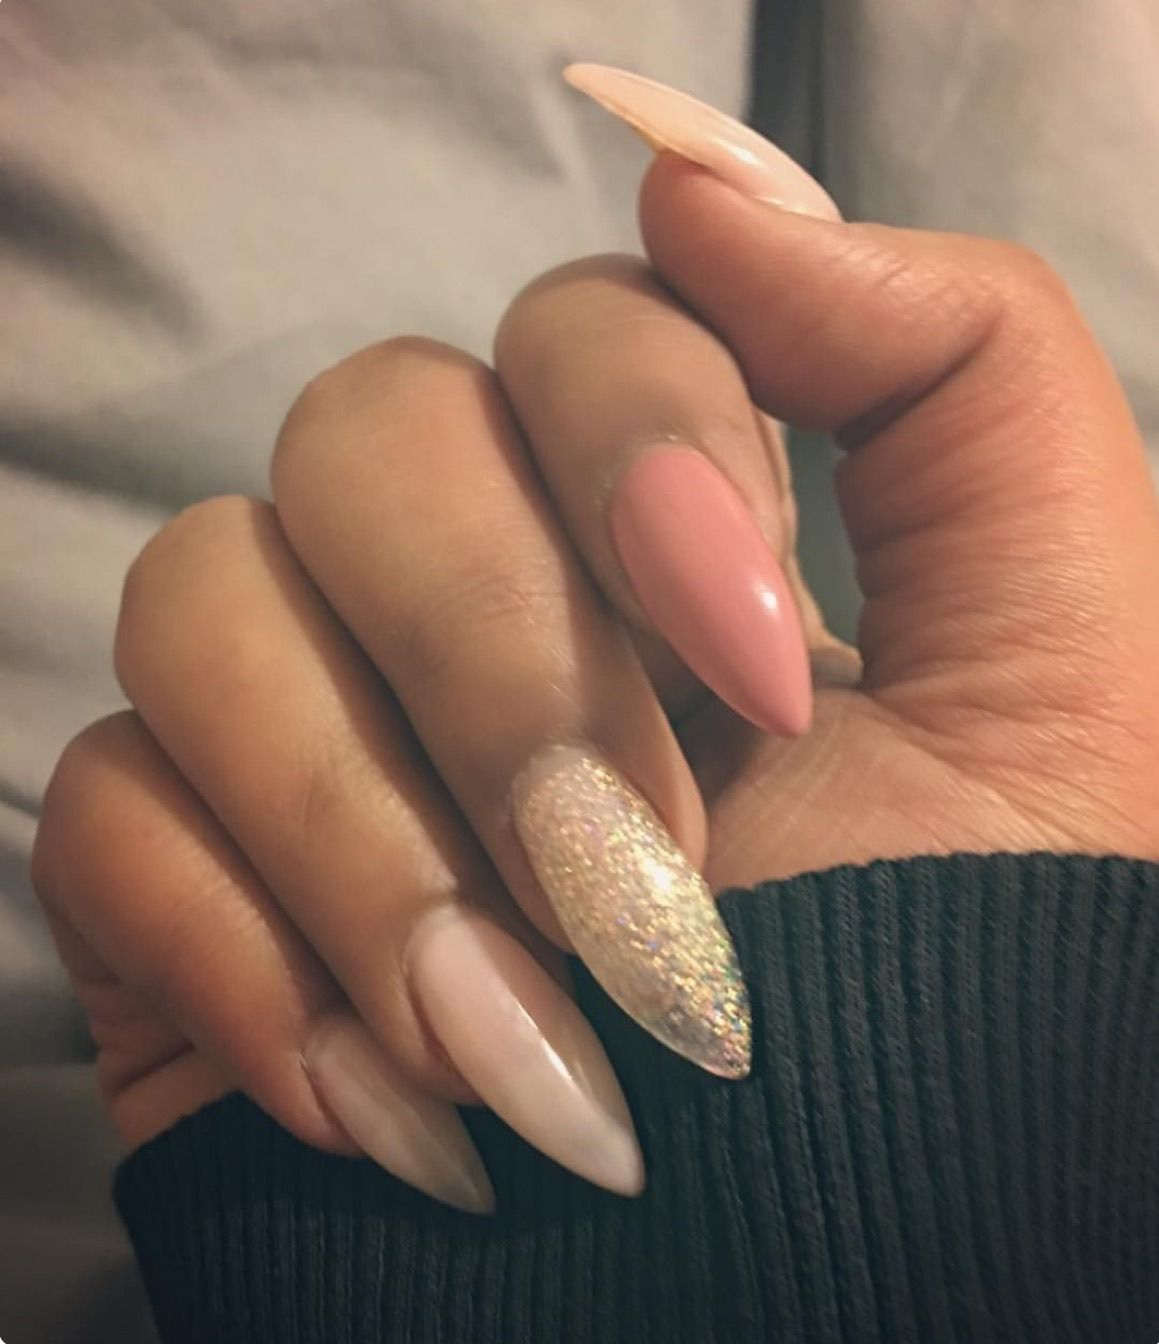 Pin by Viola Wowigshair on Manicure | Pinterest | Manicure